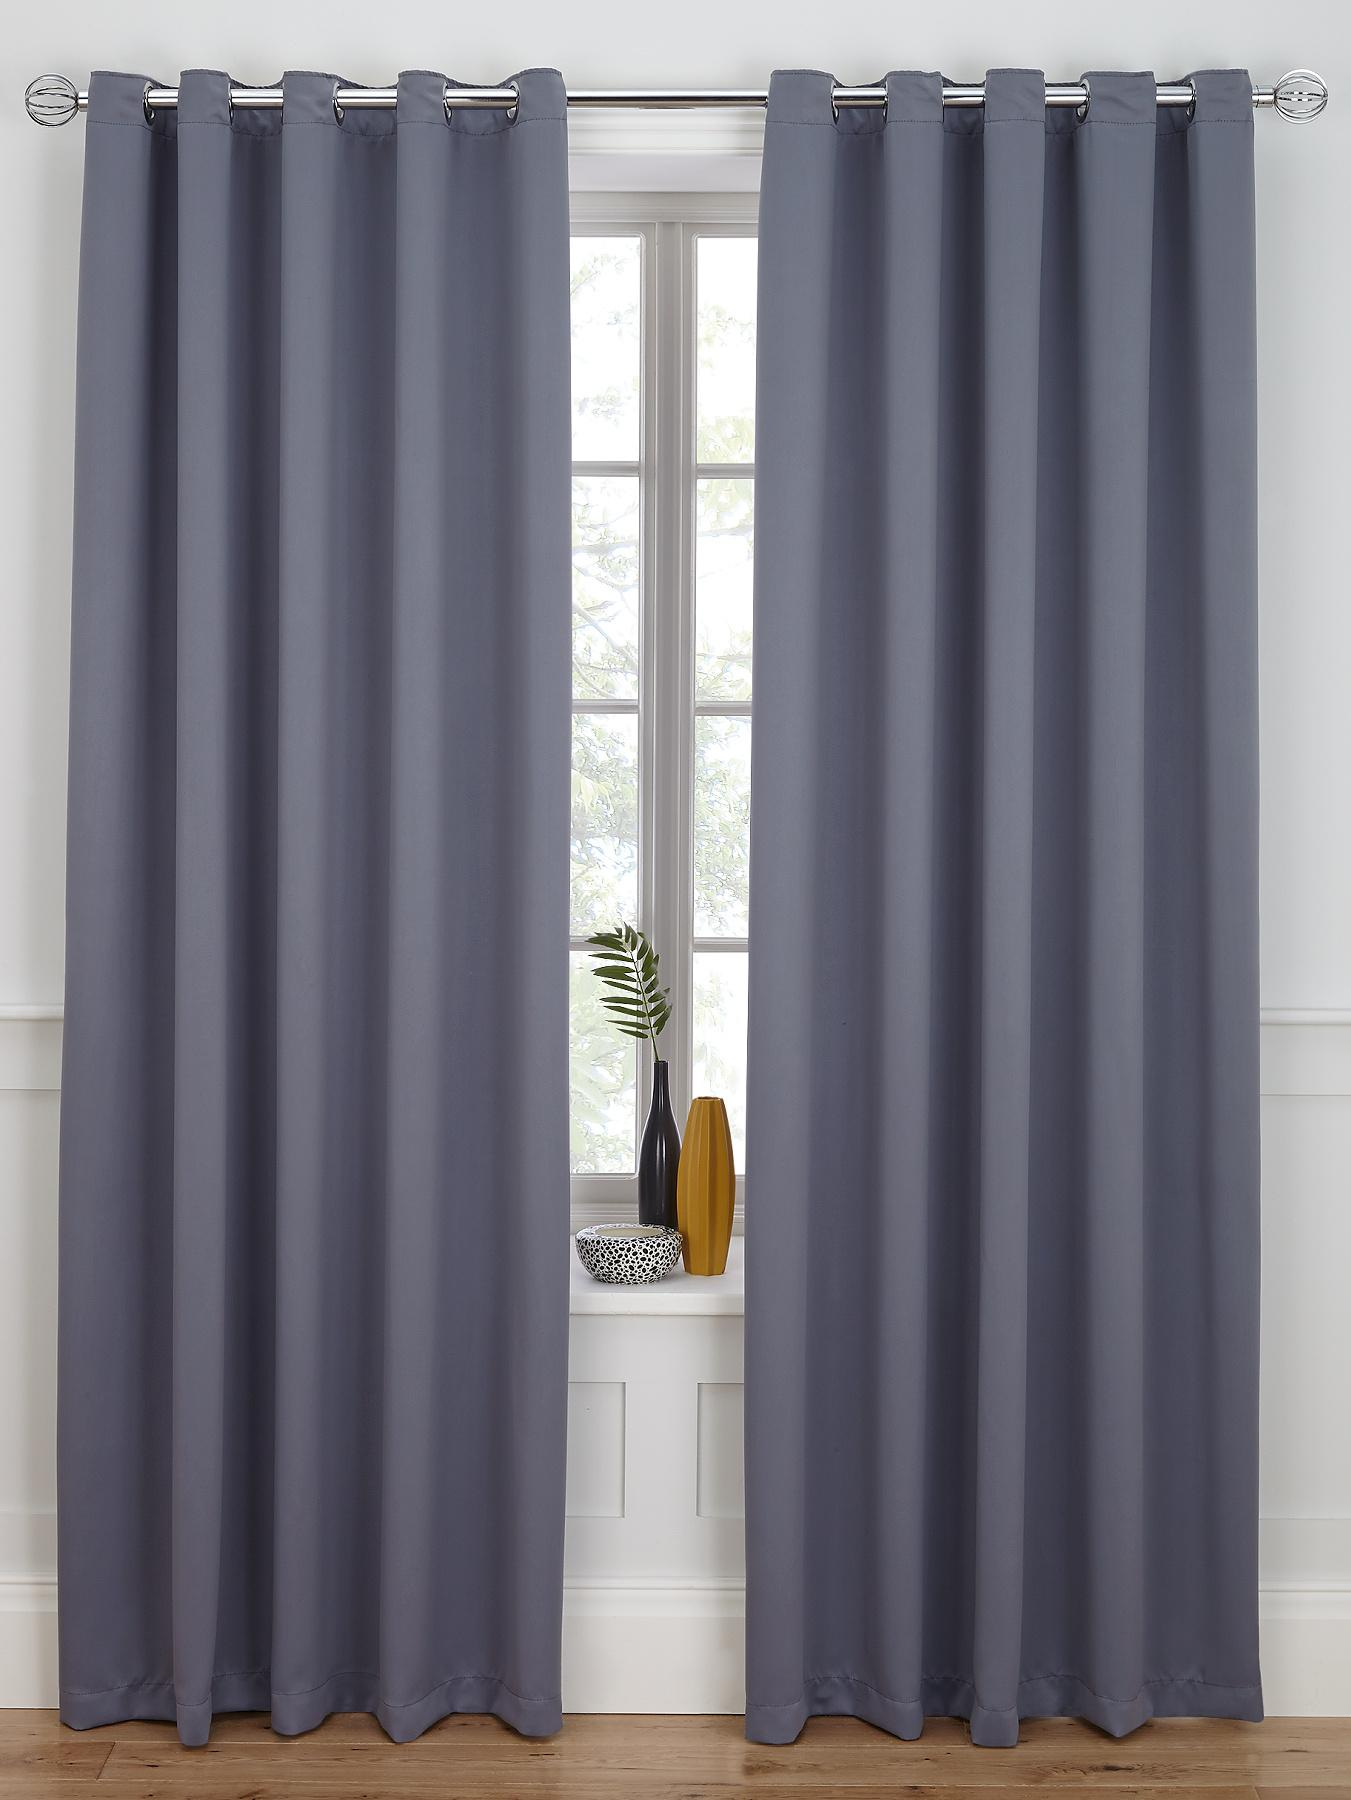 Kitchen Curtains Littlewoods Grey Eyelet Bedroom Curtains 1000 Ideas About Grey Eyelet